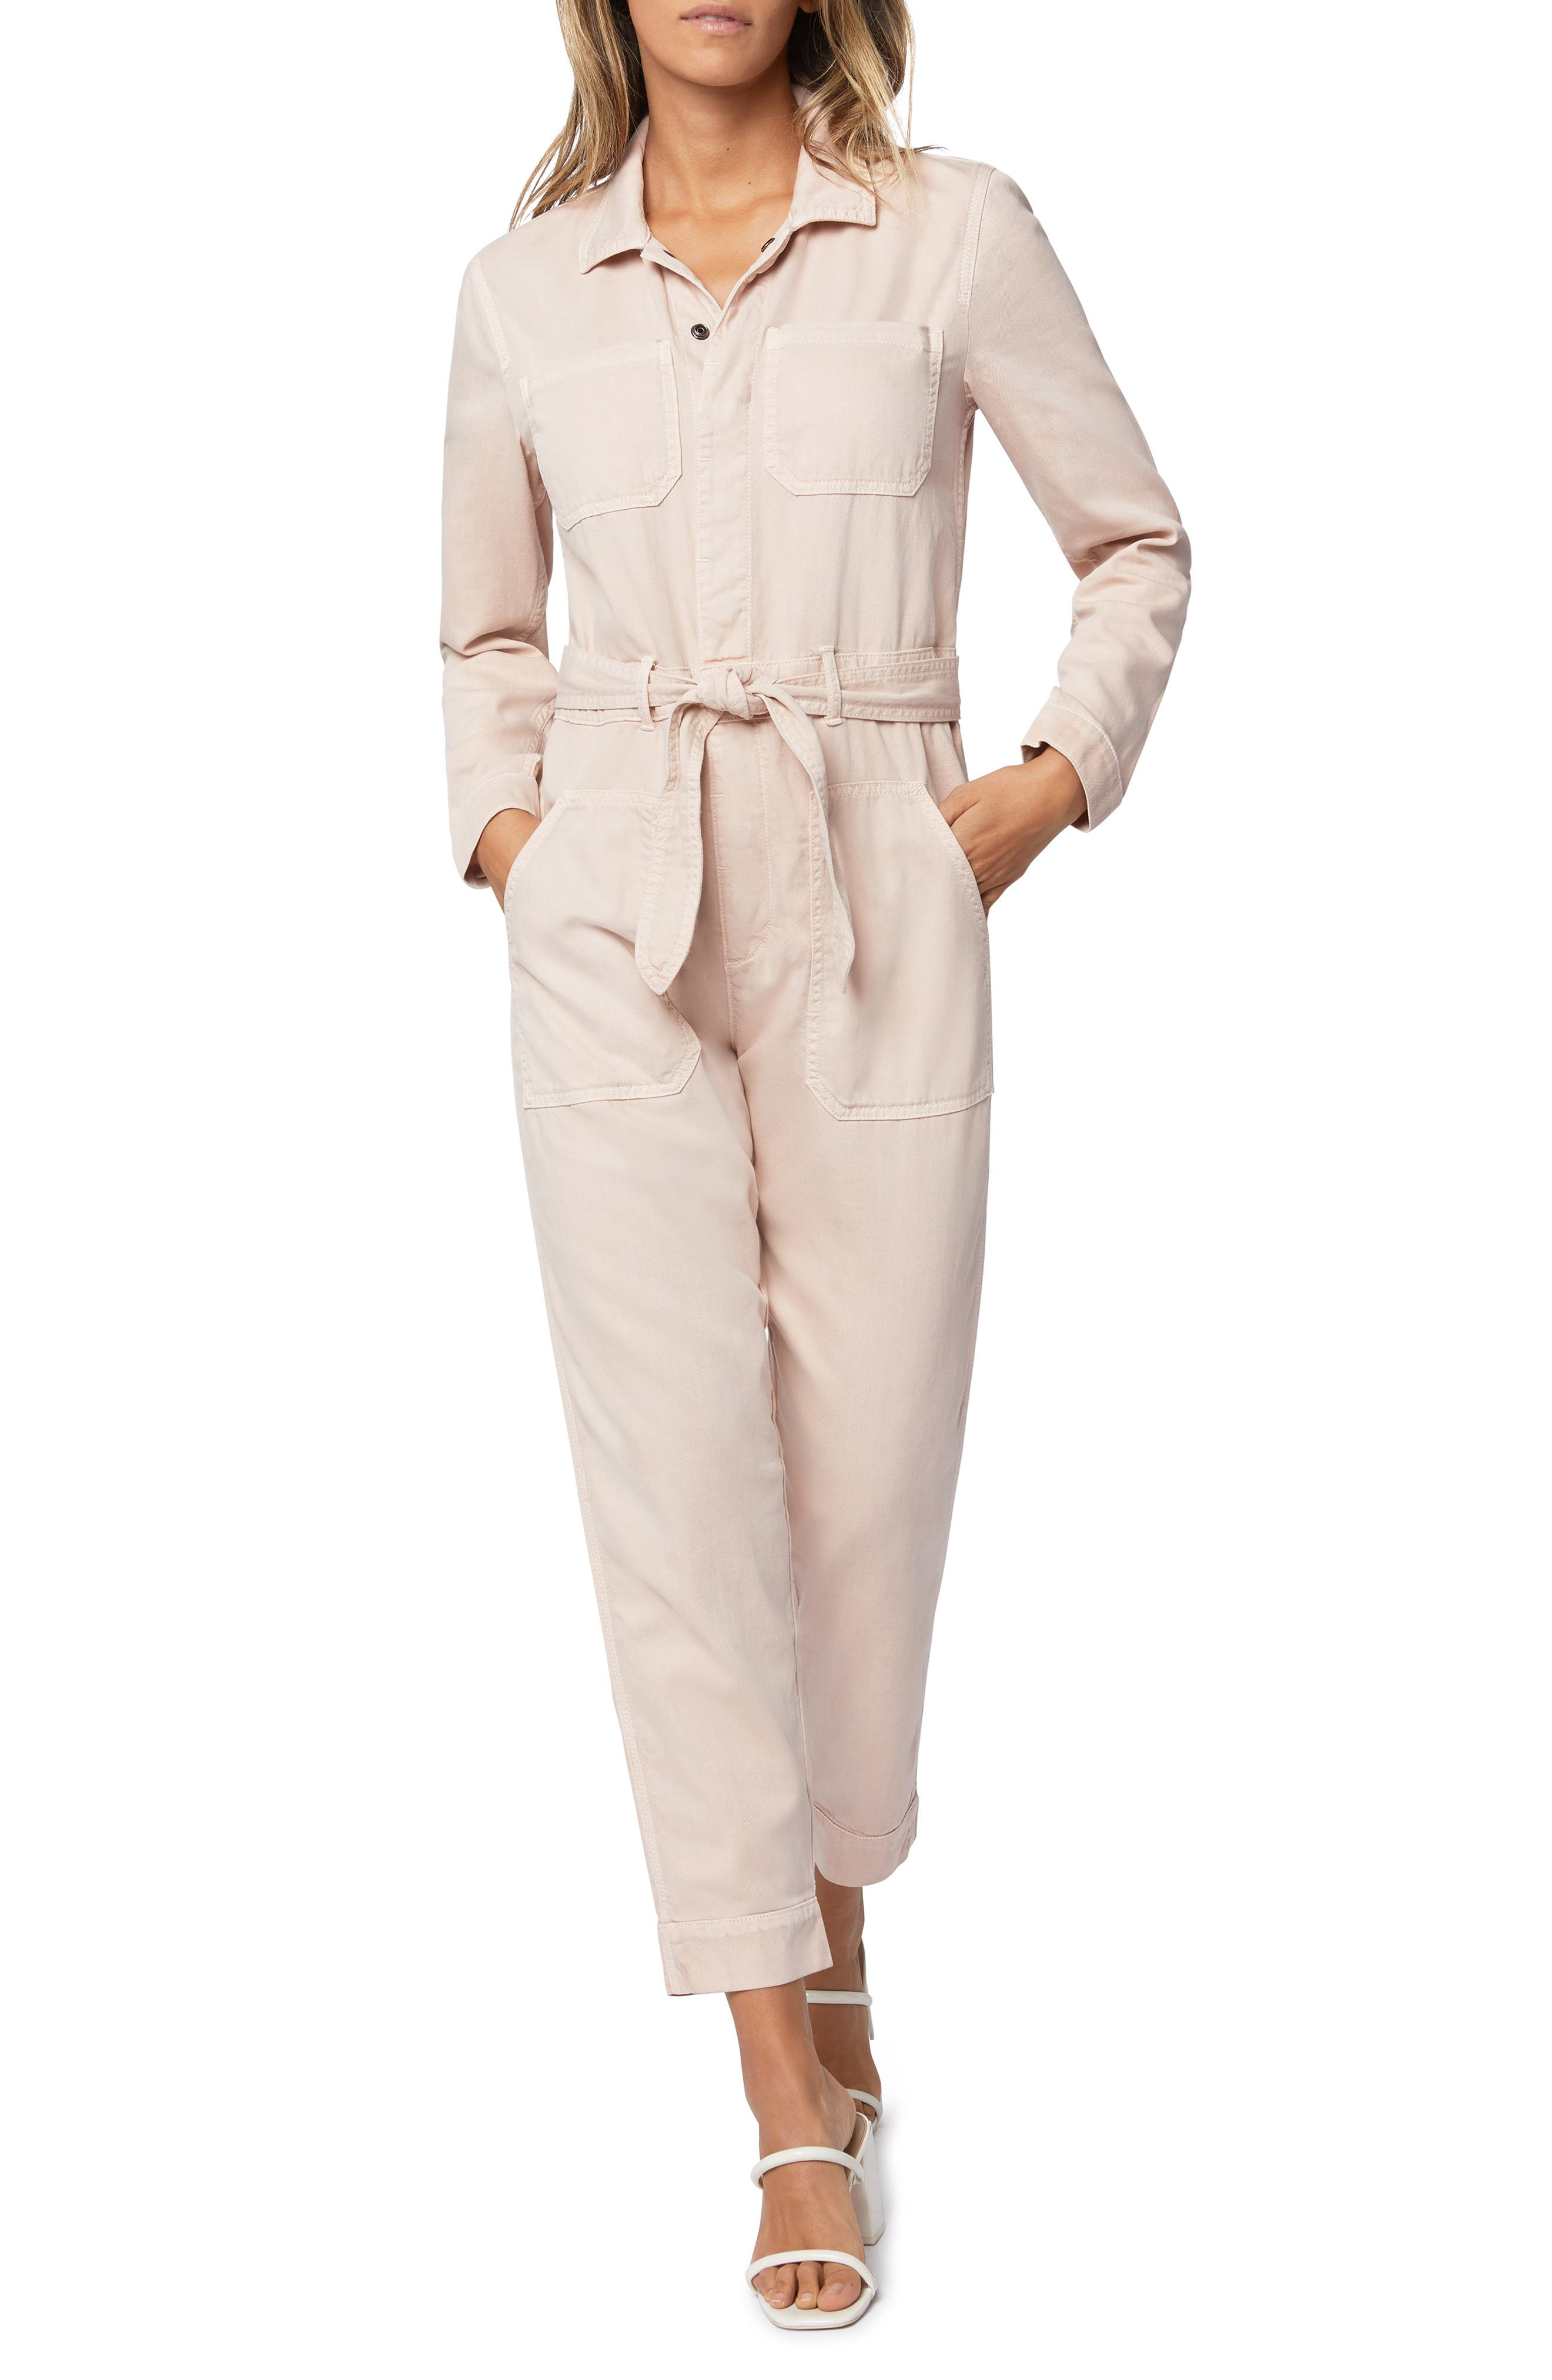 Looking cool is an easy job when you\\\'re wearing this workwear-inspired jumpsuit cinched with a tie belt. Style Name: Joe\\\'s Rika Utility Jumpsuit. Style Number: 6027652. Available in stores.